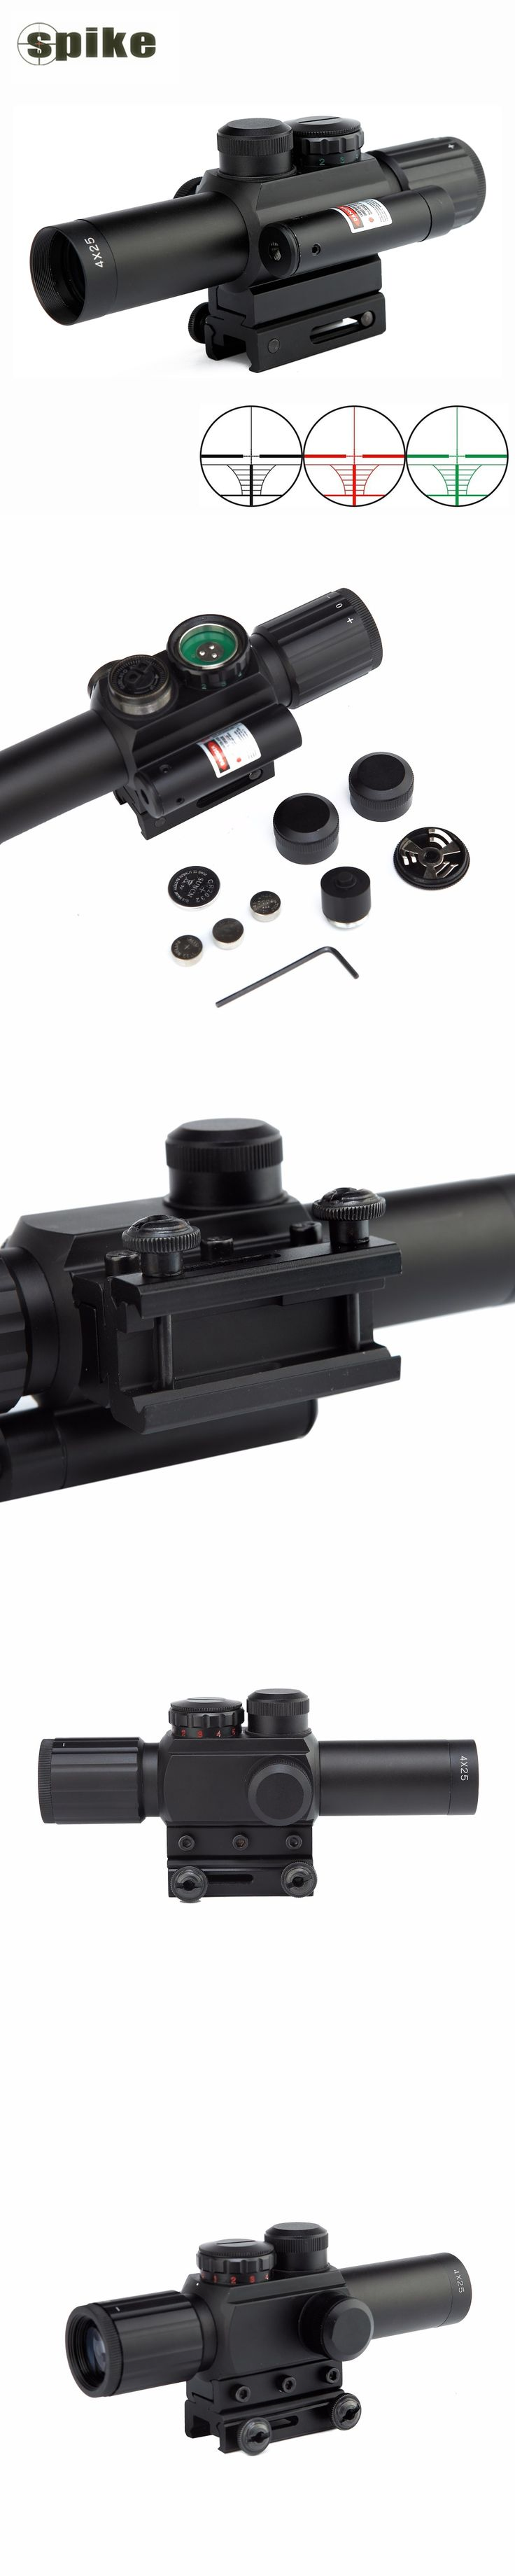 Spike M6 11mm 20mm dovetail tactical scope 4x25 rifle sights with red laser sight, 24 Mil dot riflescope for hunting air gun